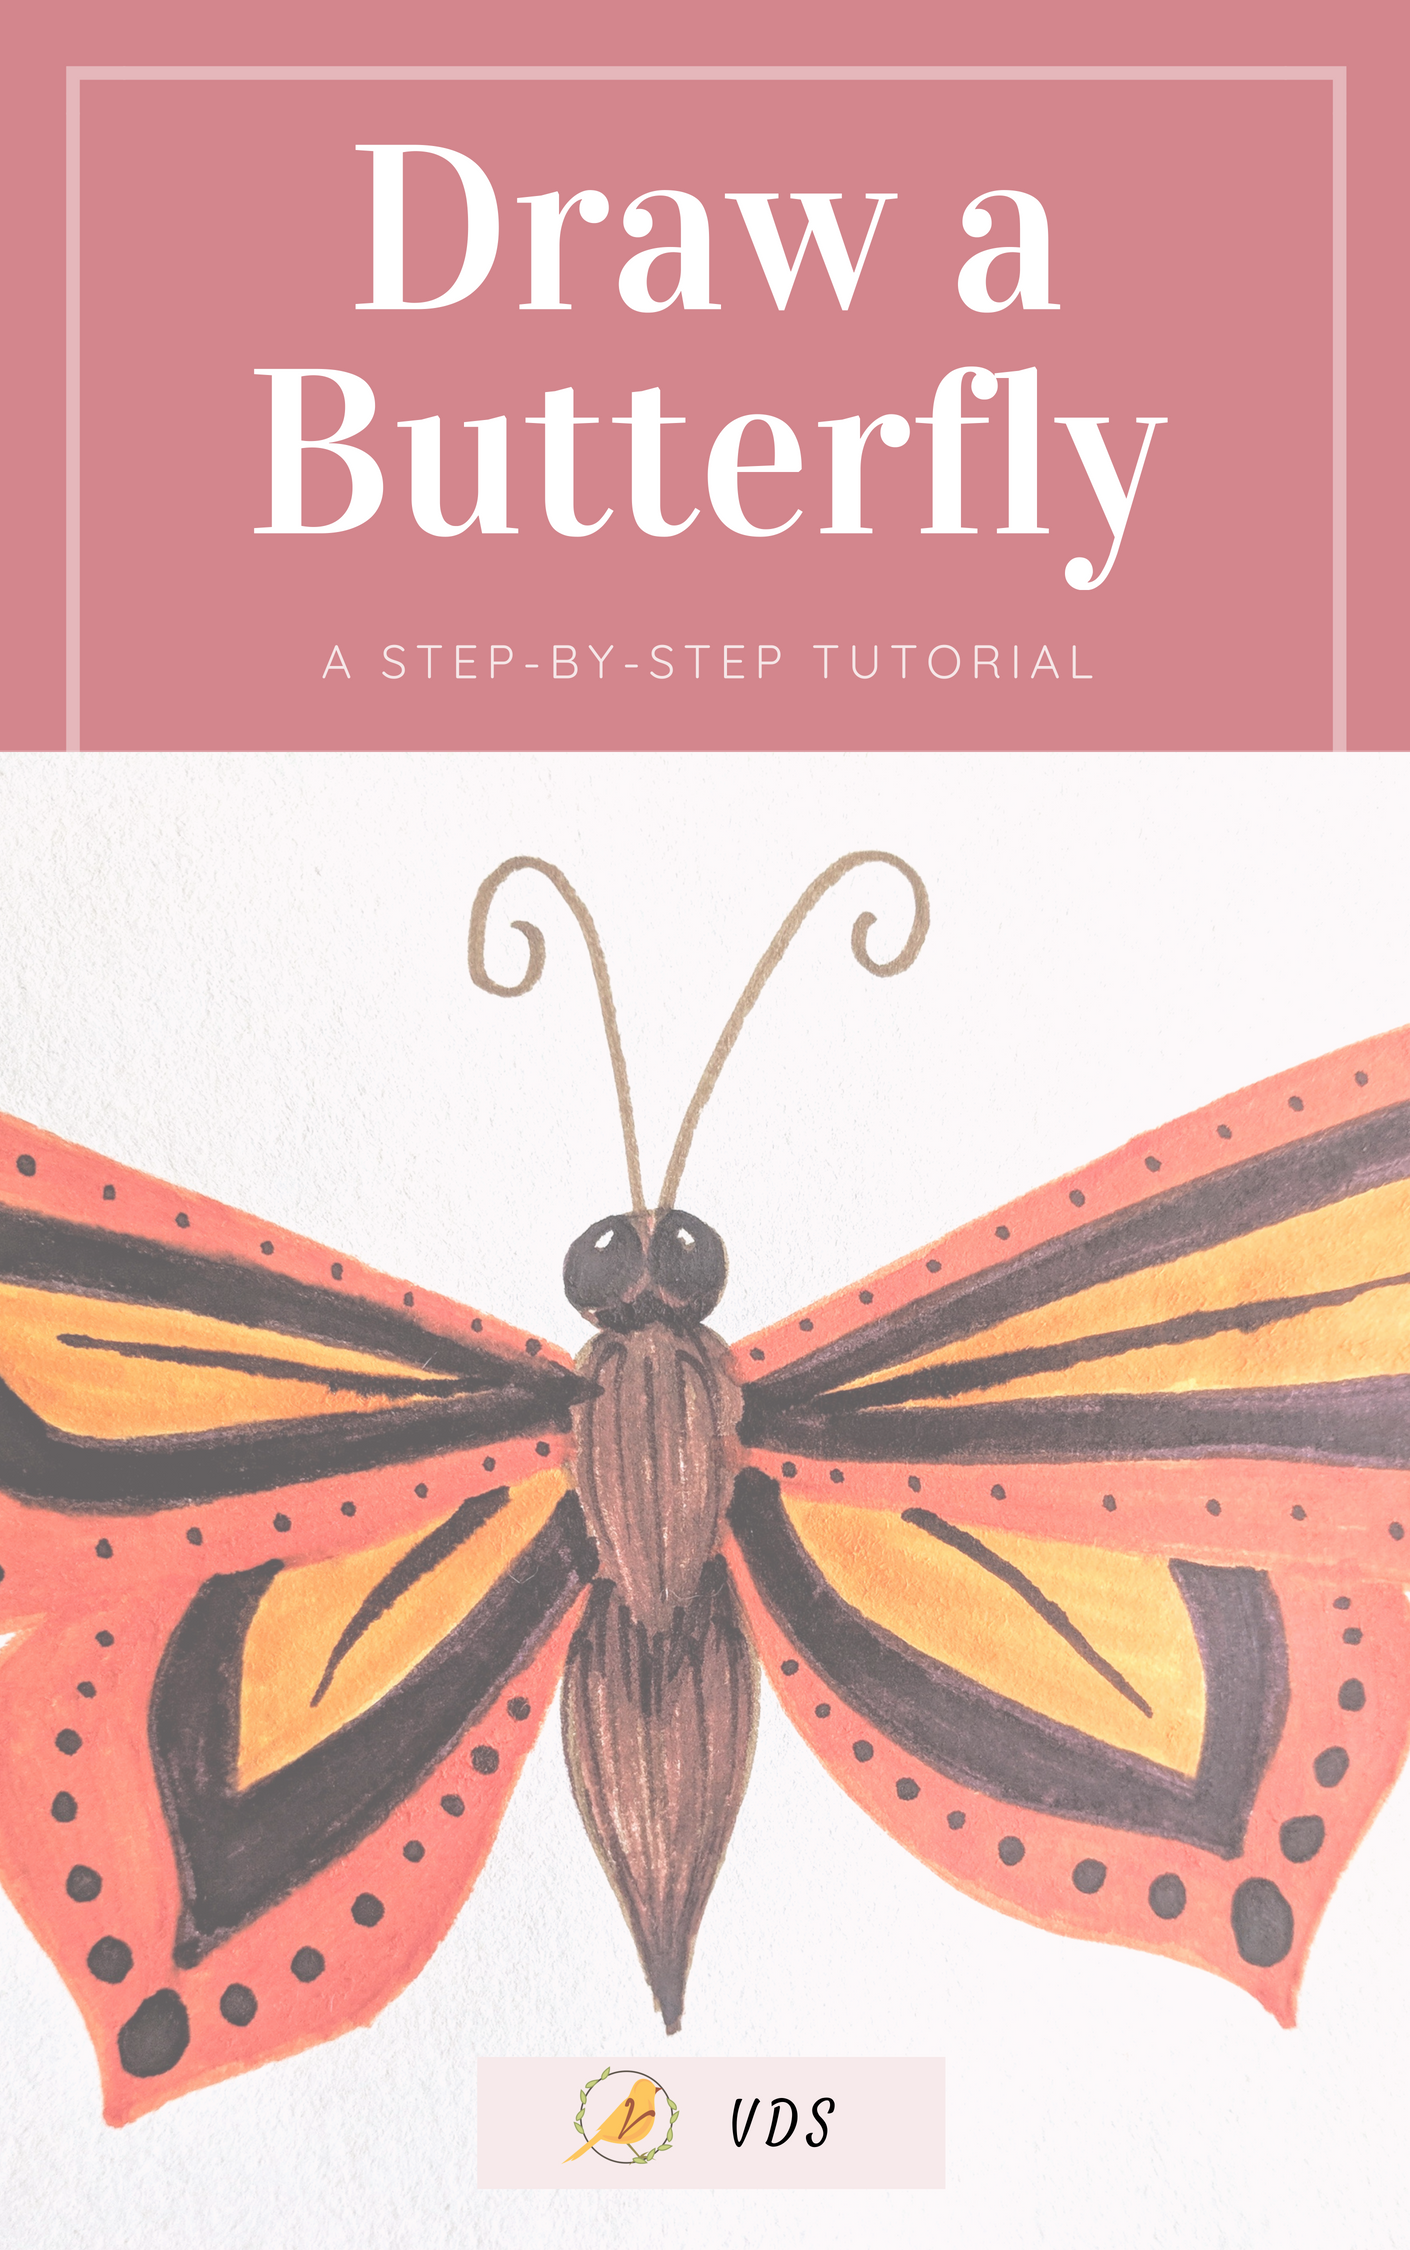 Draw a Butterfly Free Illustration Tutorial